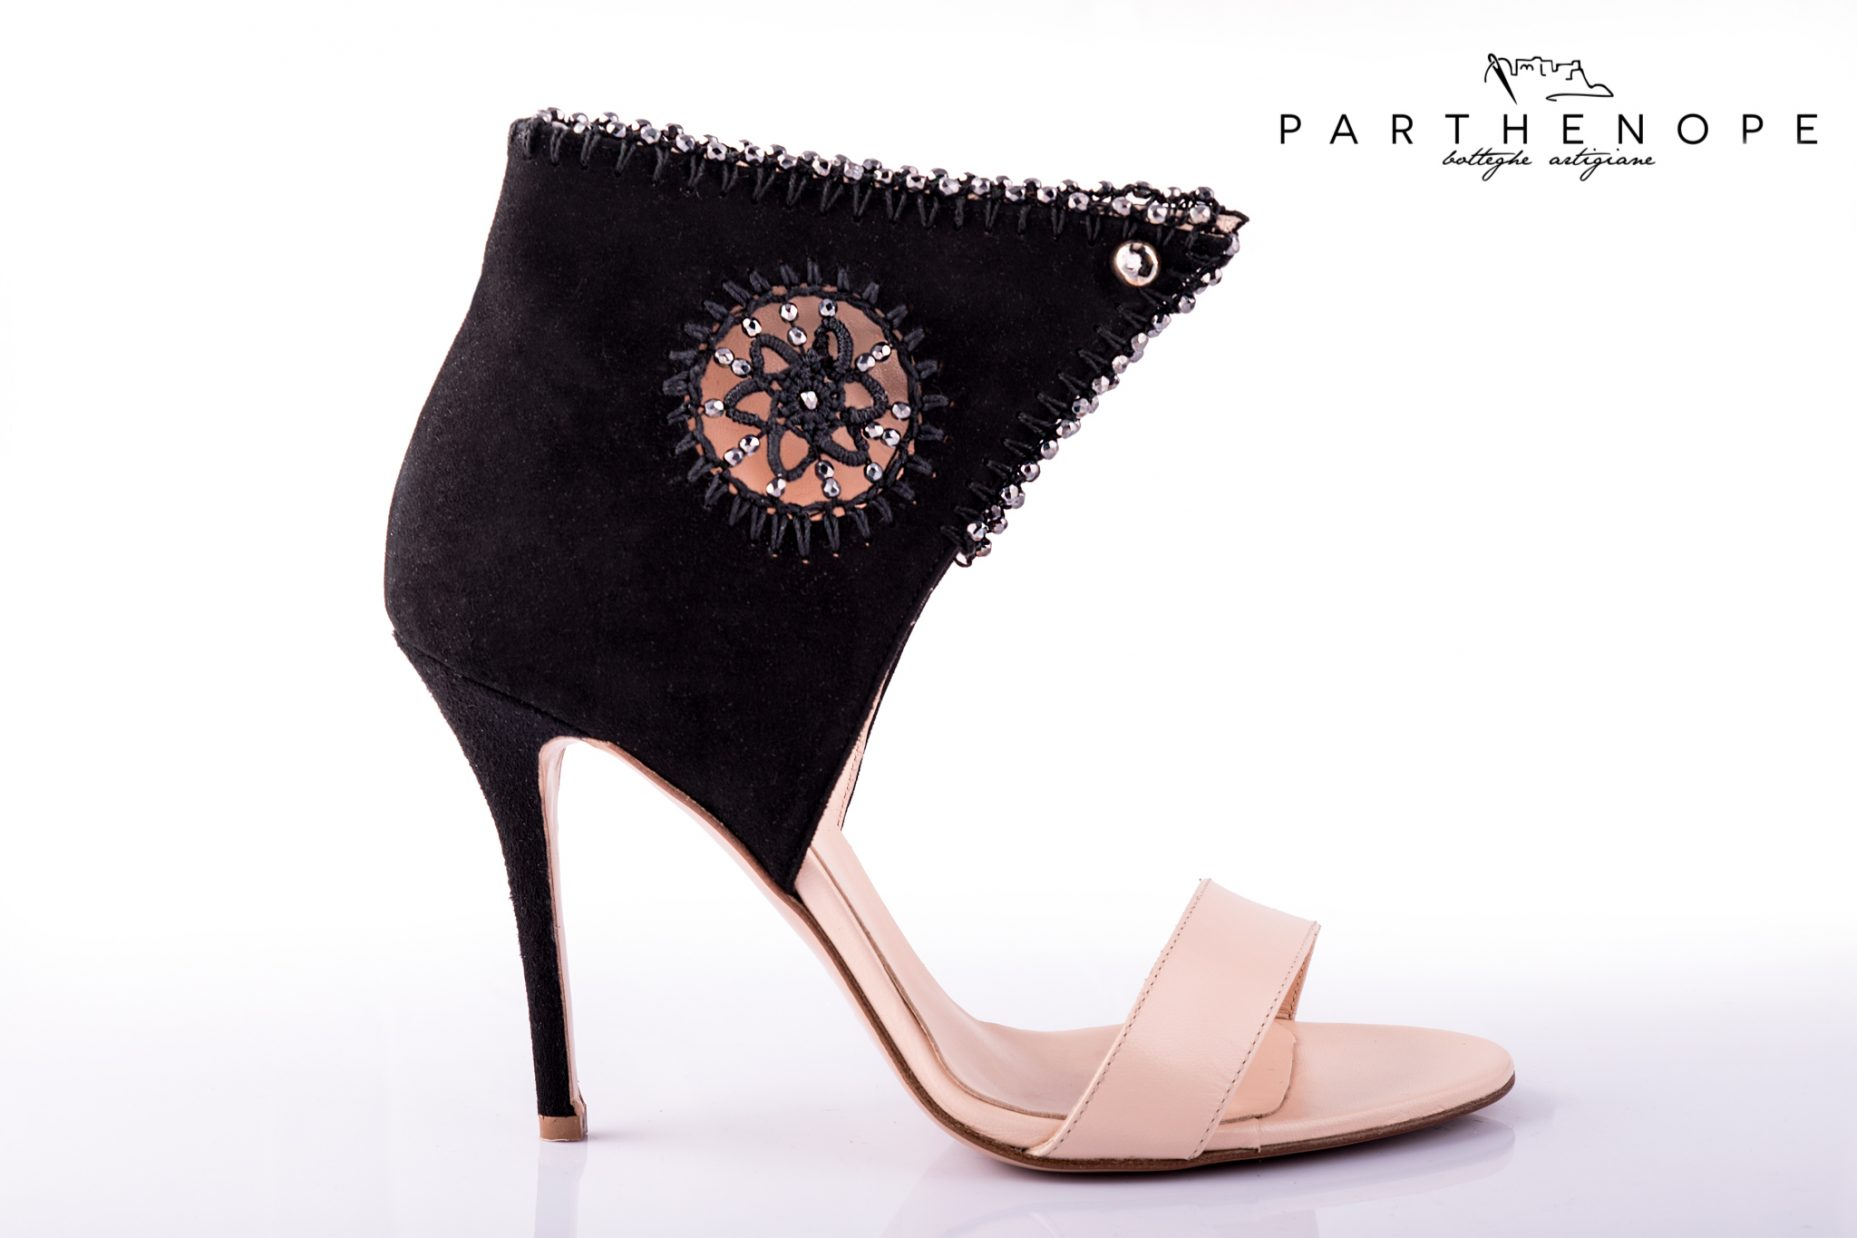 Parthenope Botteghe Artigiane Capsule Luxury Collection Still Life by www.gabrieleardemagni.com